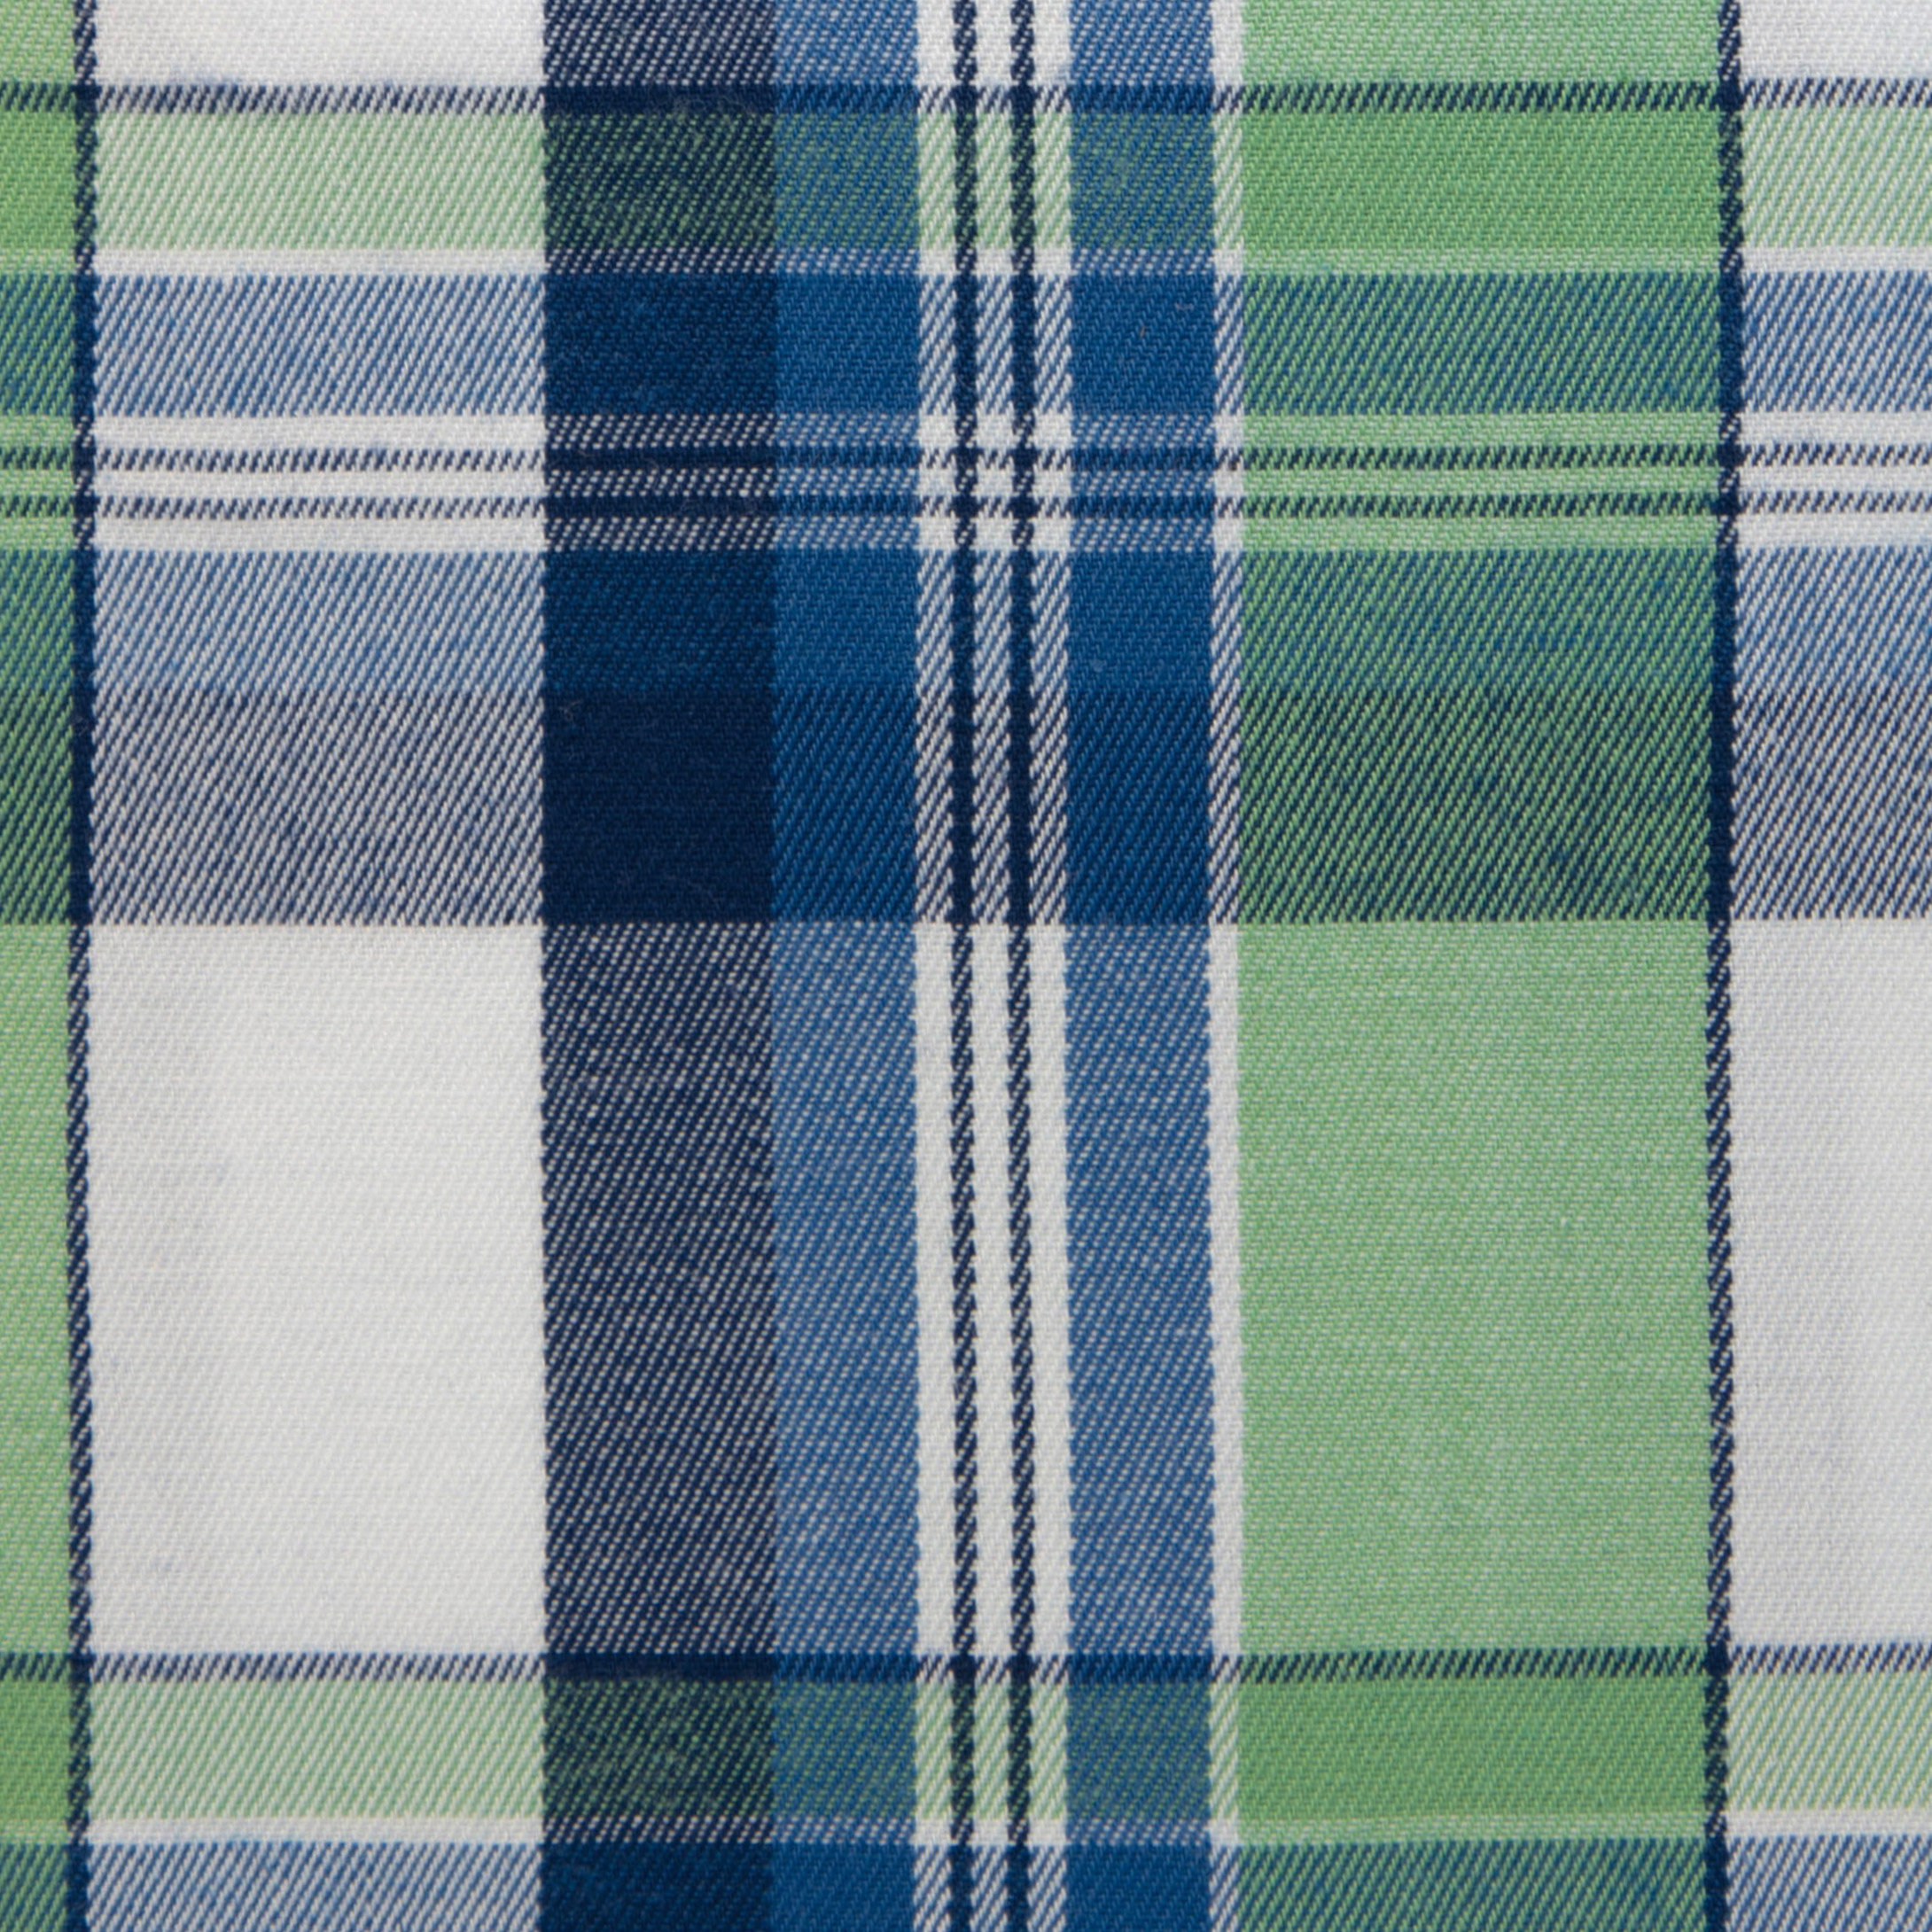 Buy tailor made shirts online - Texas Country Checks - Green and Blue Check